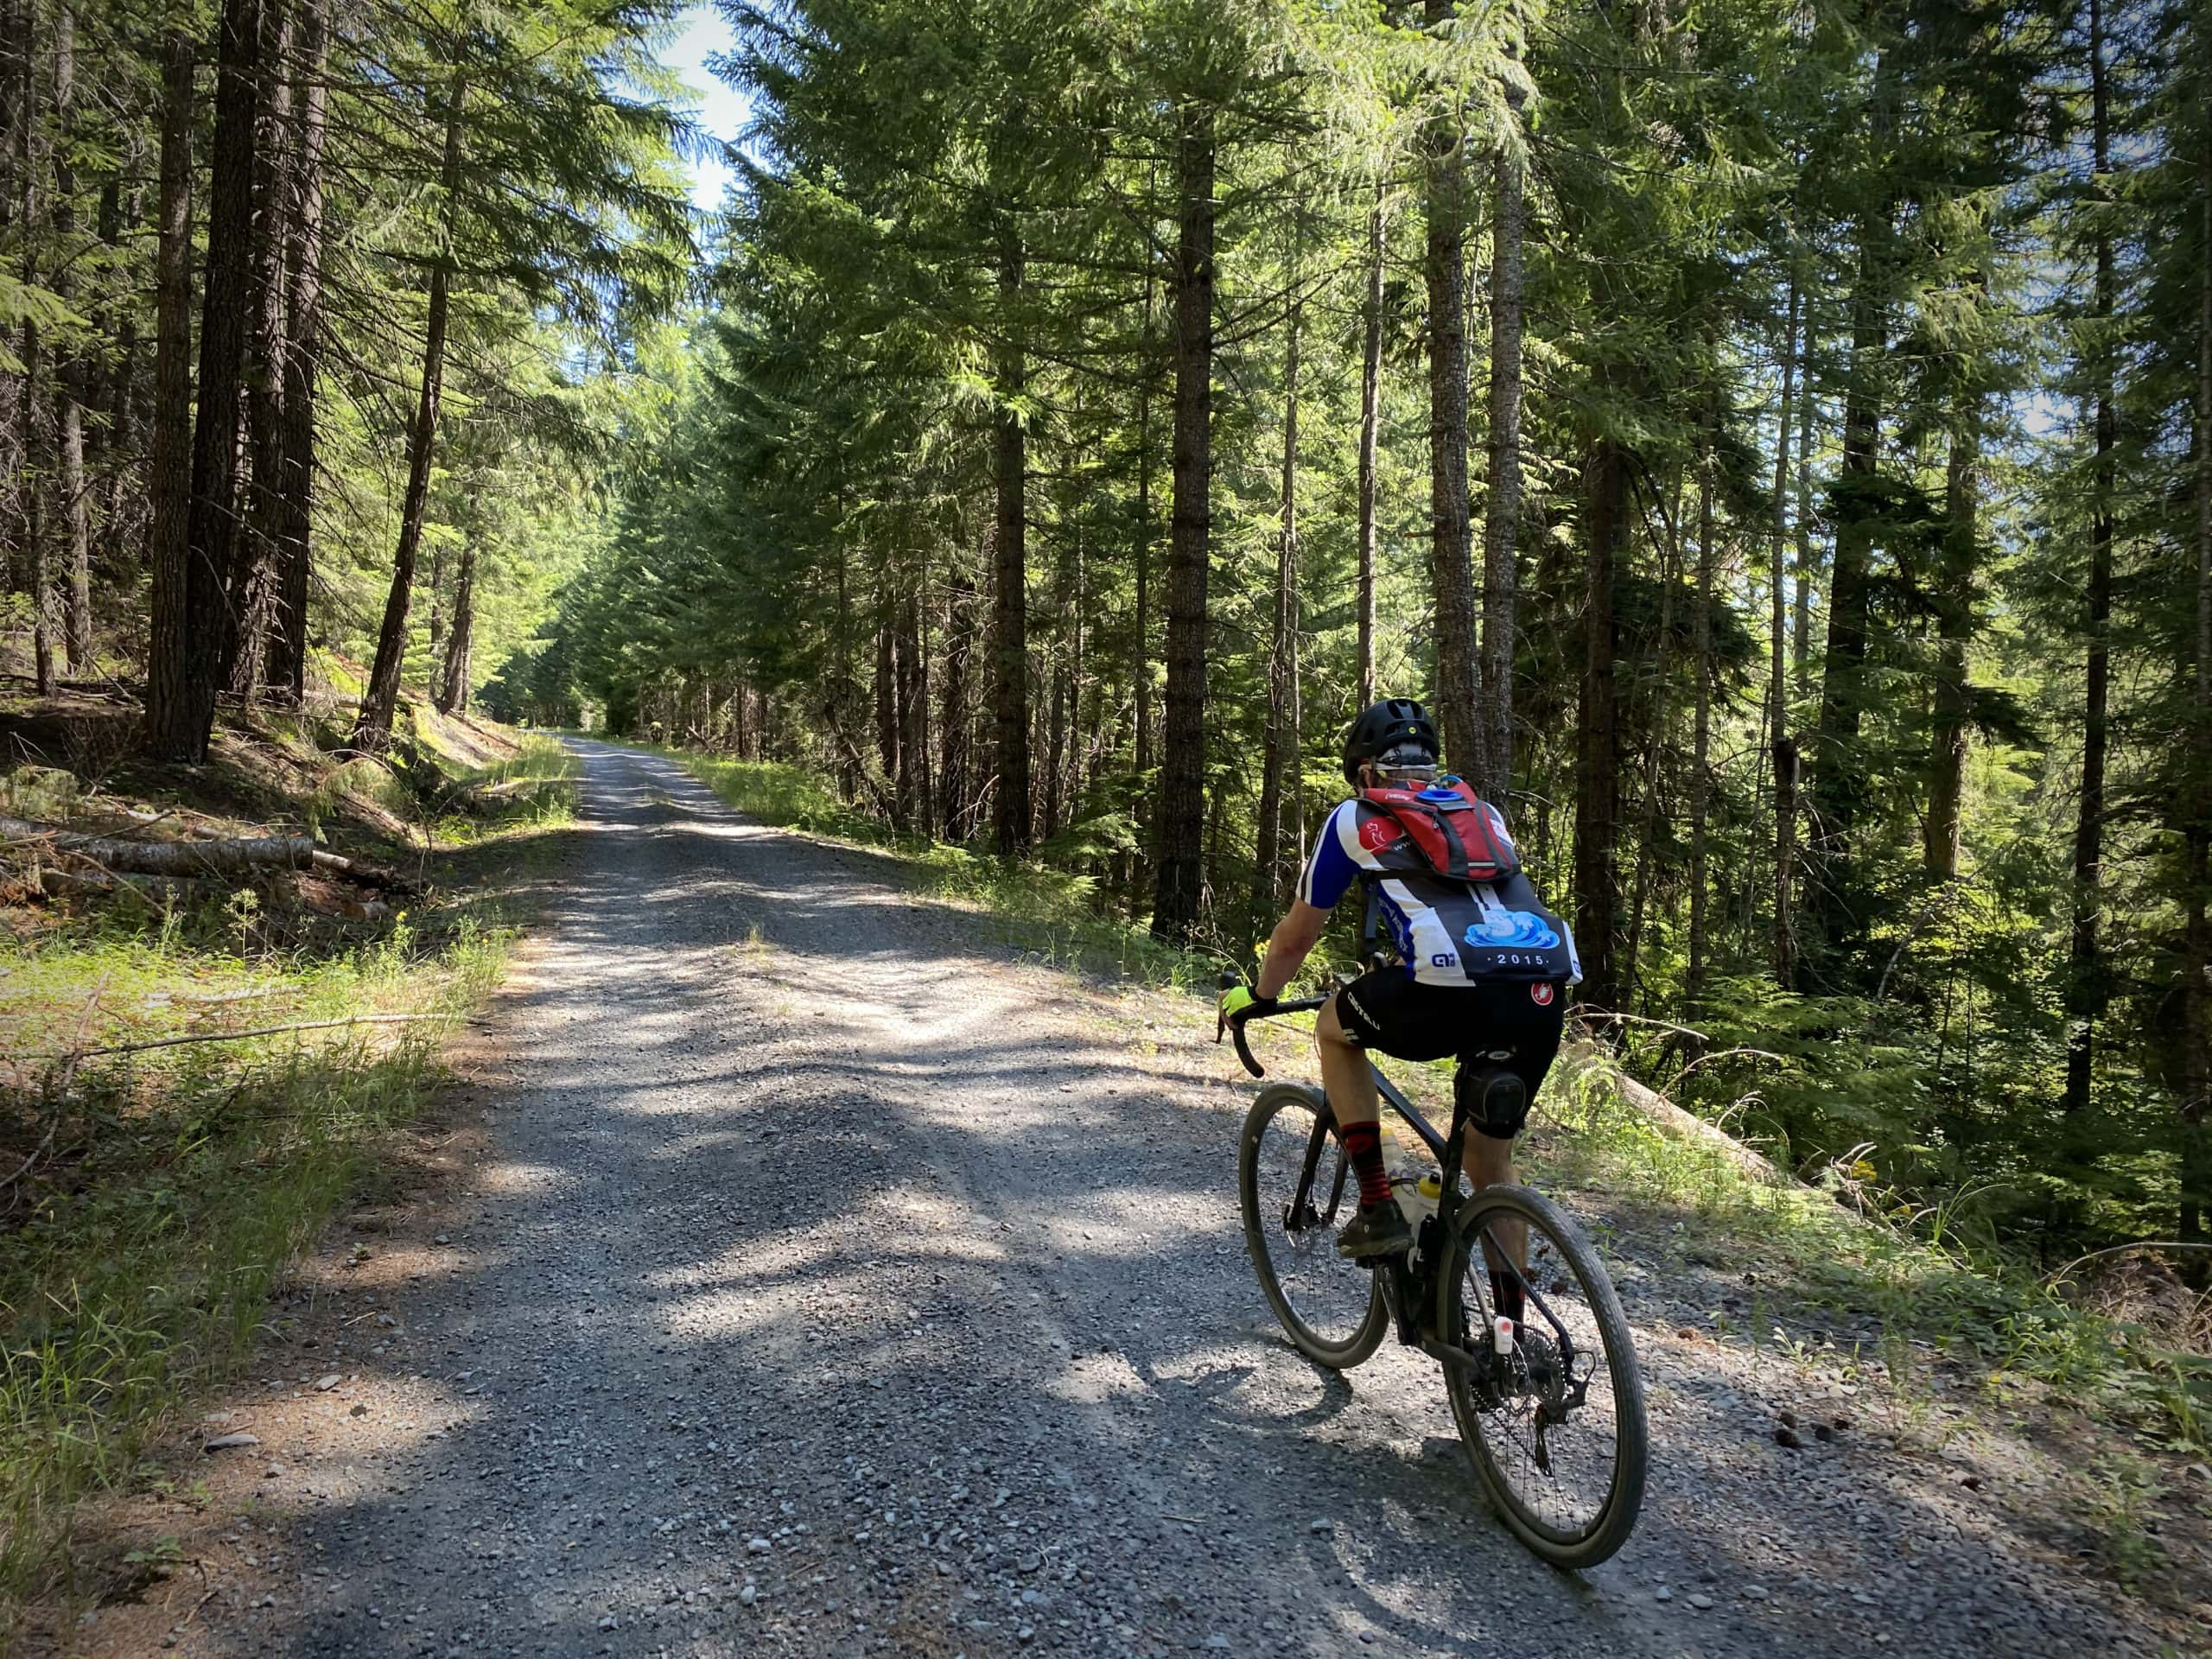 Cyclist on the gravel portion of NF 23 along Swift Creek in the Willamette National Forest.